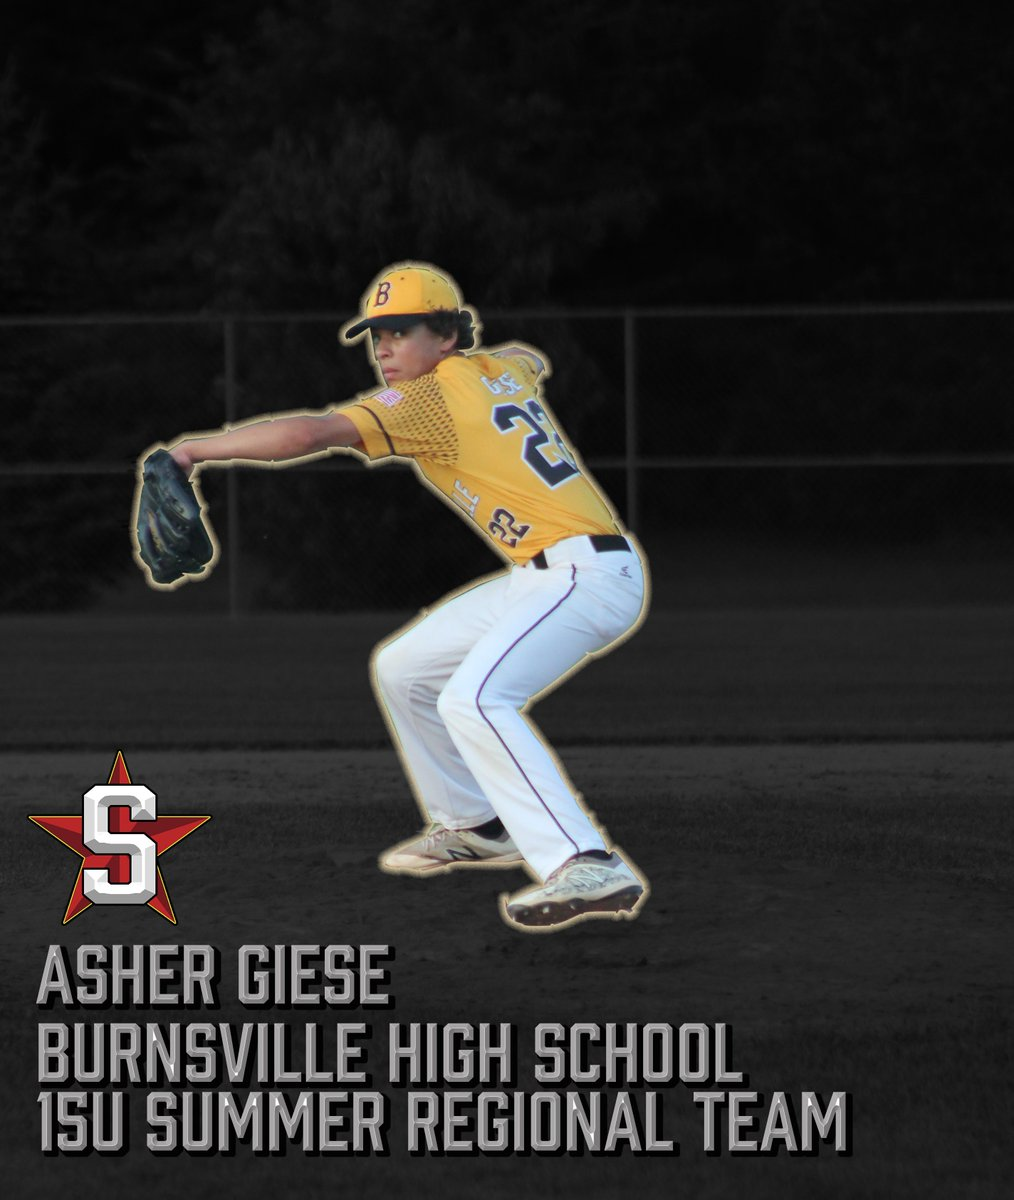 502b11190 ... powerhouse Burnsville baseball program with the talent to hit the ball  out of any park...including Yellowstone. More to come.pic.twitter .com cgHWGveY4E